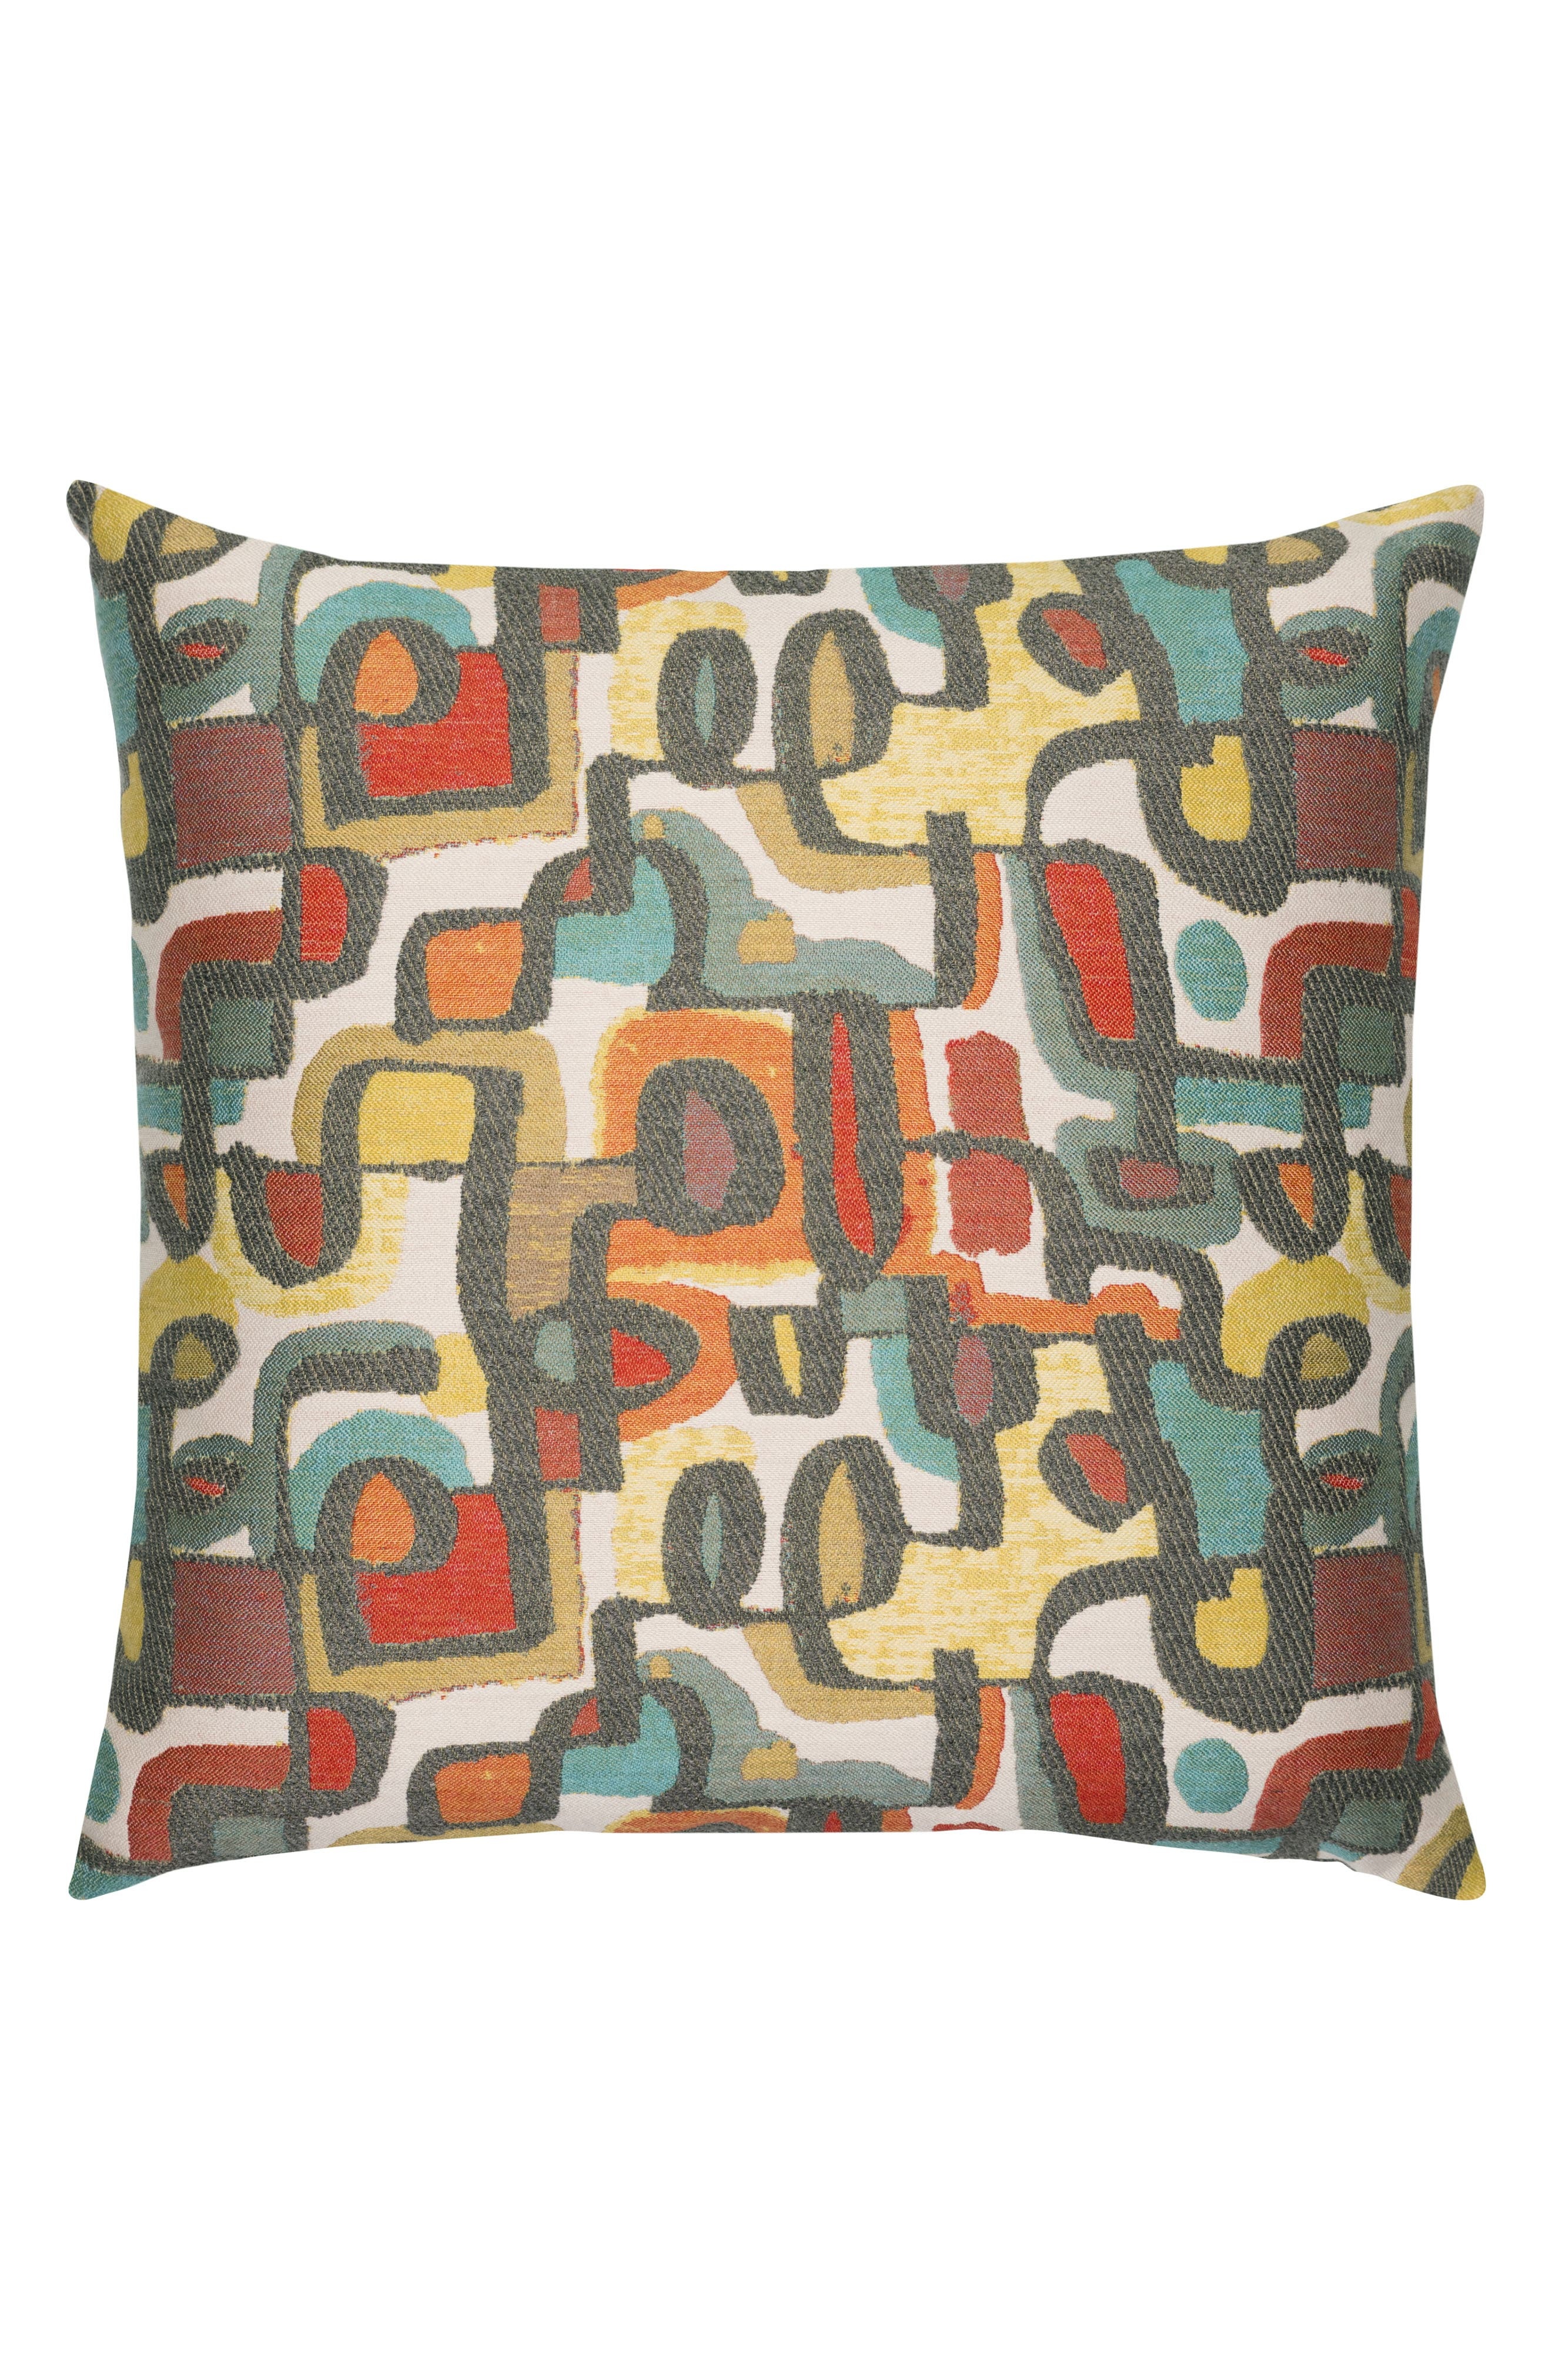 ELAINE SMITH,                             Art Scene Indoor/Outdoor Accent Pillow,                             Main thumbnail 1, color,                             RED MULTI